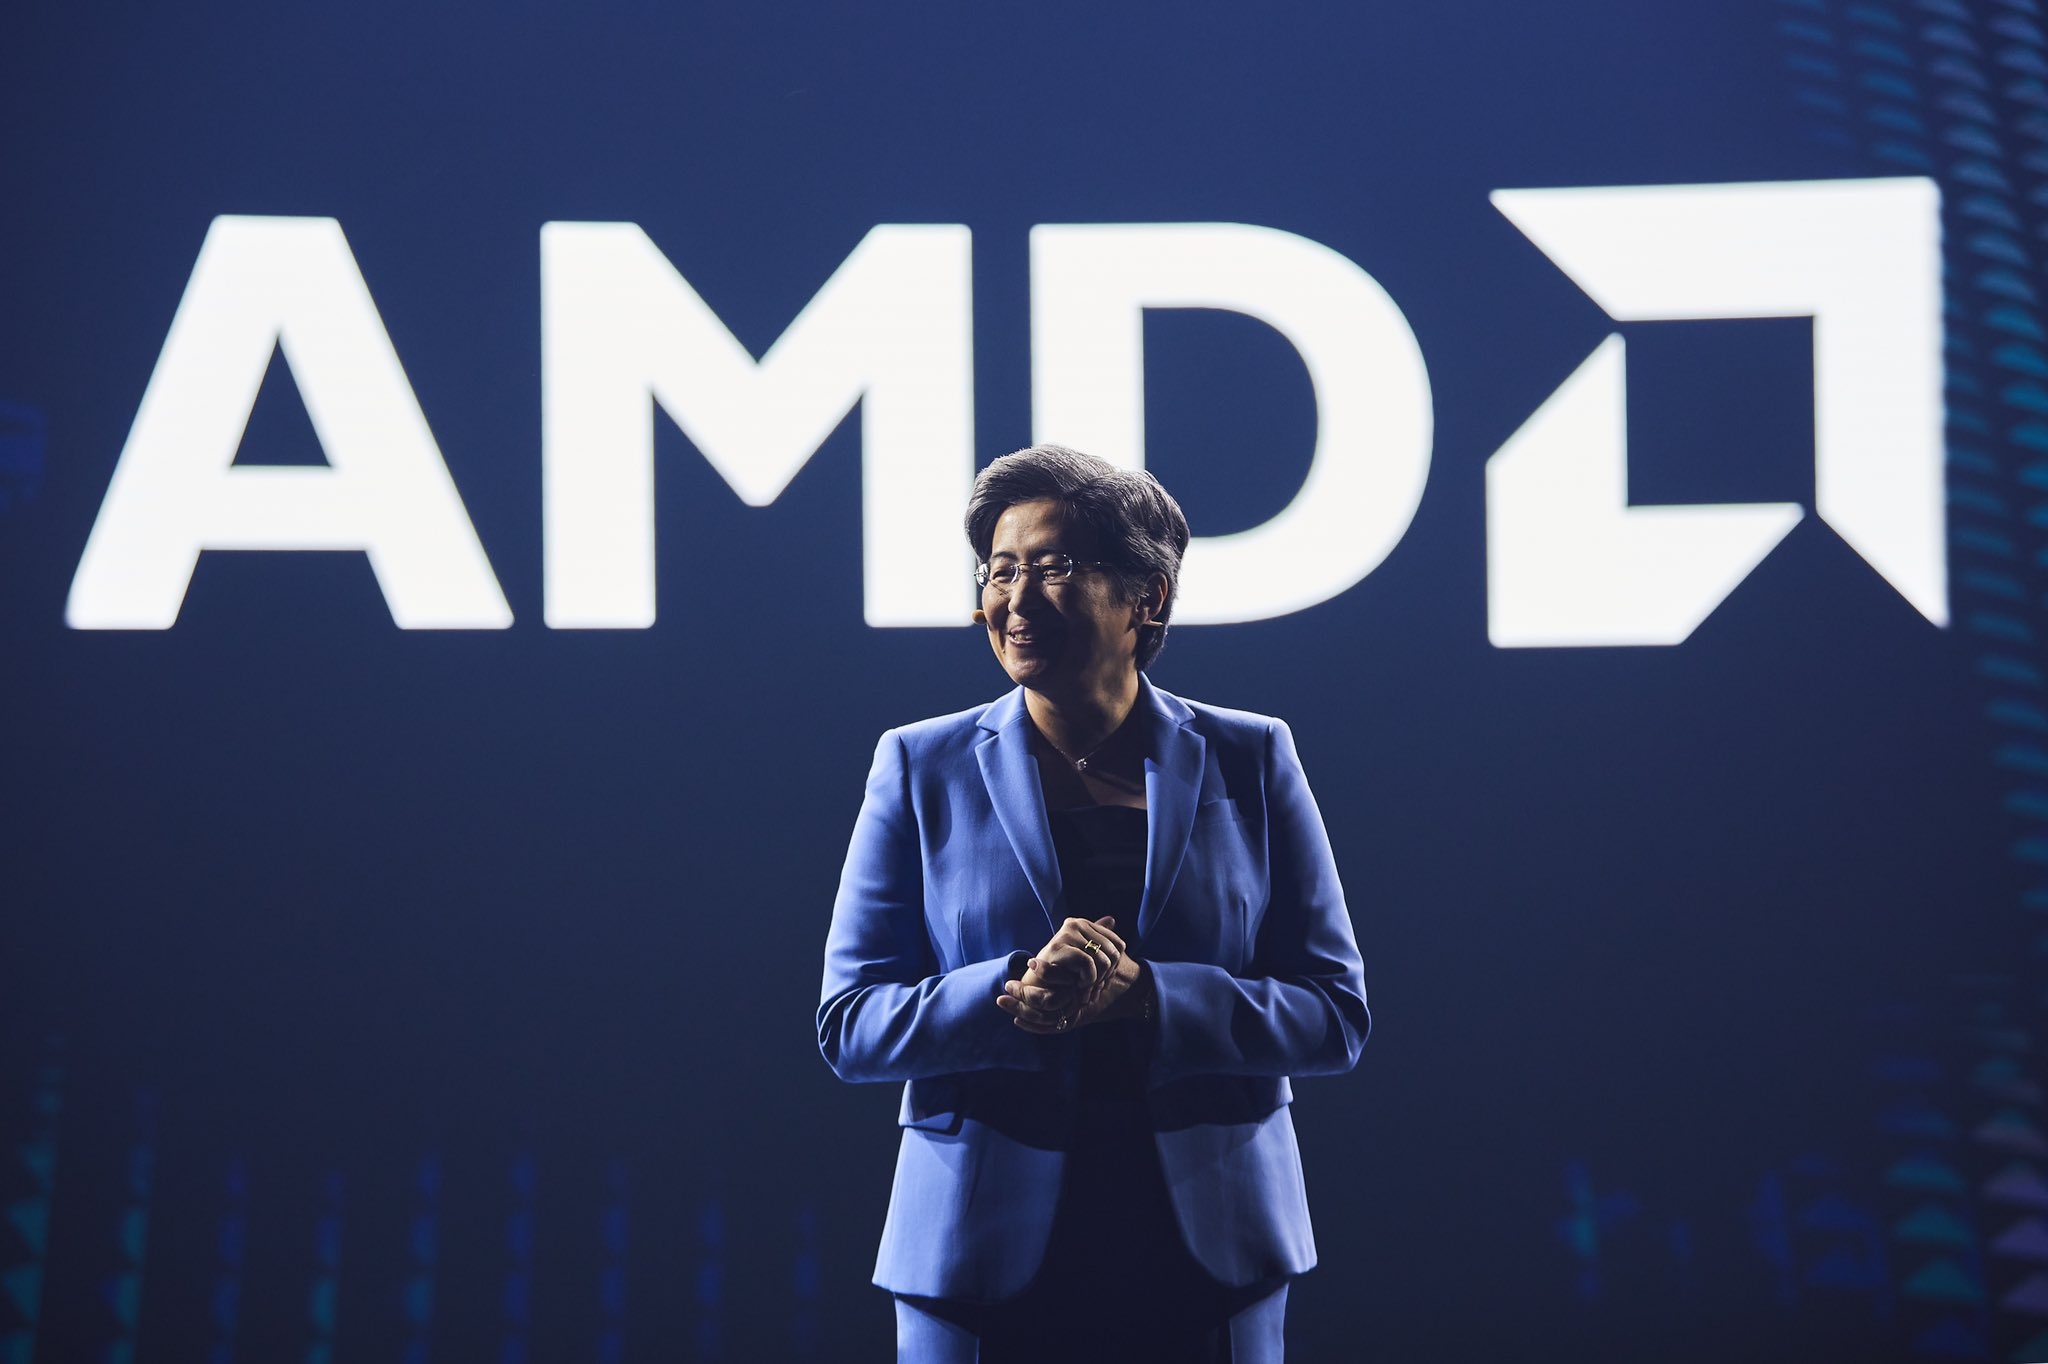 AMD High-Performance Computex 2021 Keynote Featuring CEO Dr. Lisa Su Confirmed For June 1st, Will Focus on PC Enthusiasts & Gamers